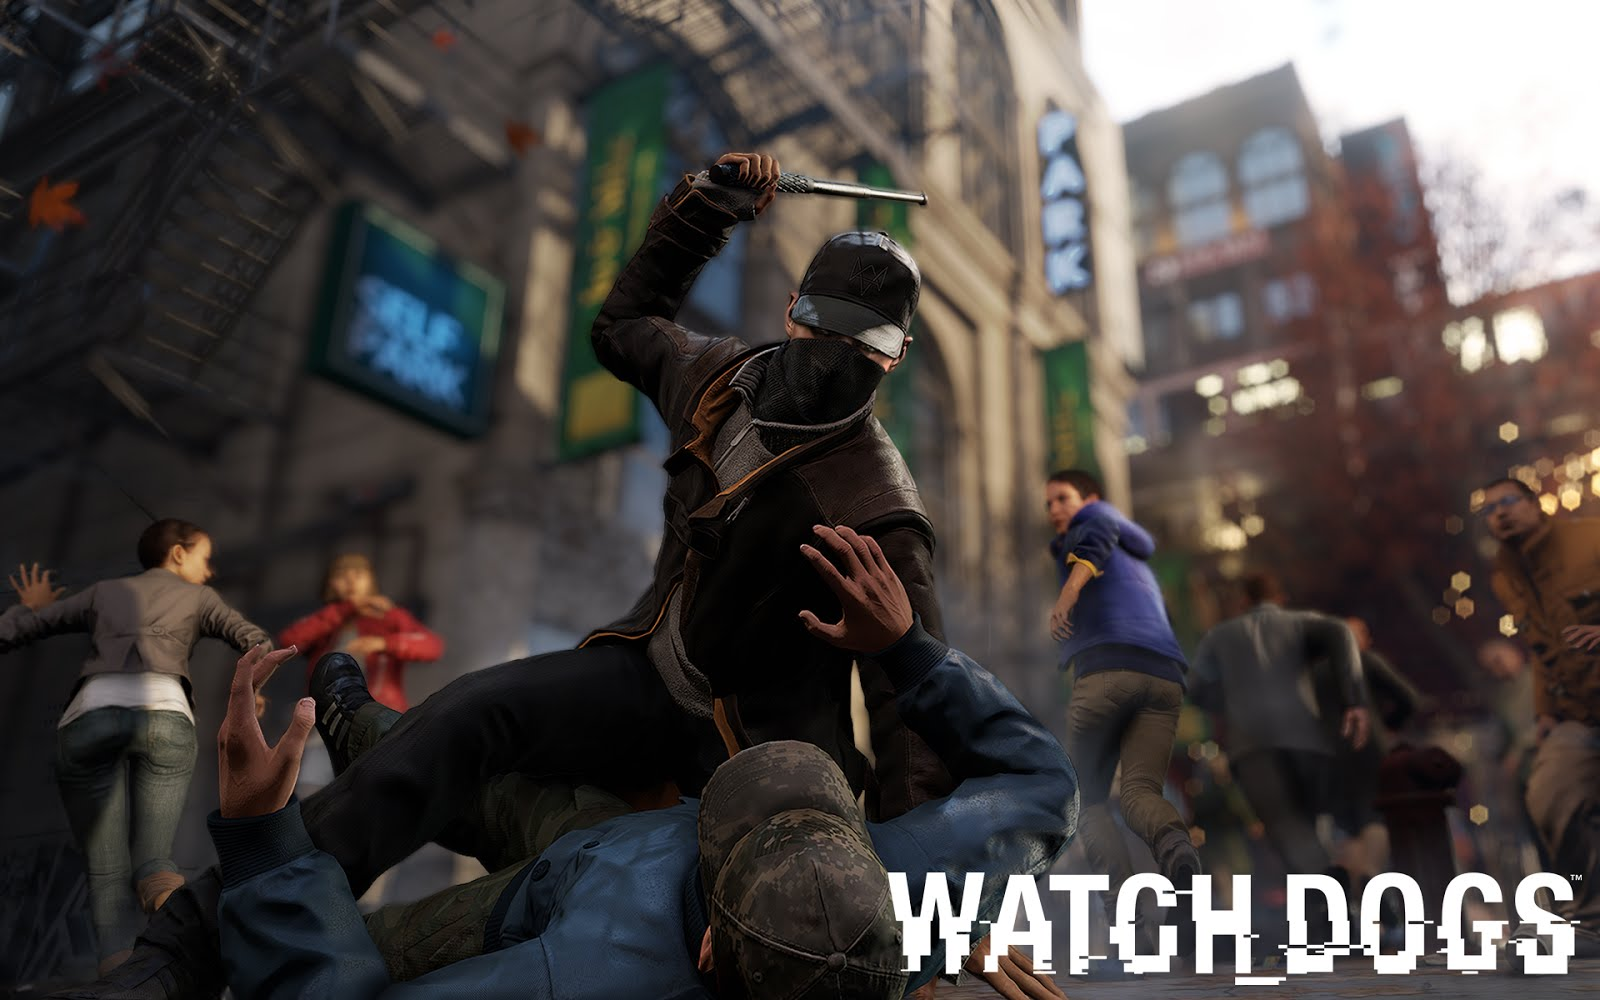 80 Watch Dogs Wallpapers for free downloade haking images